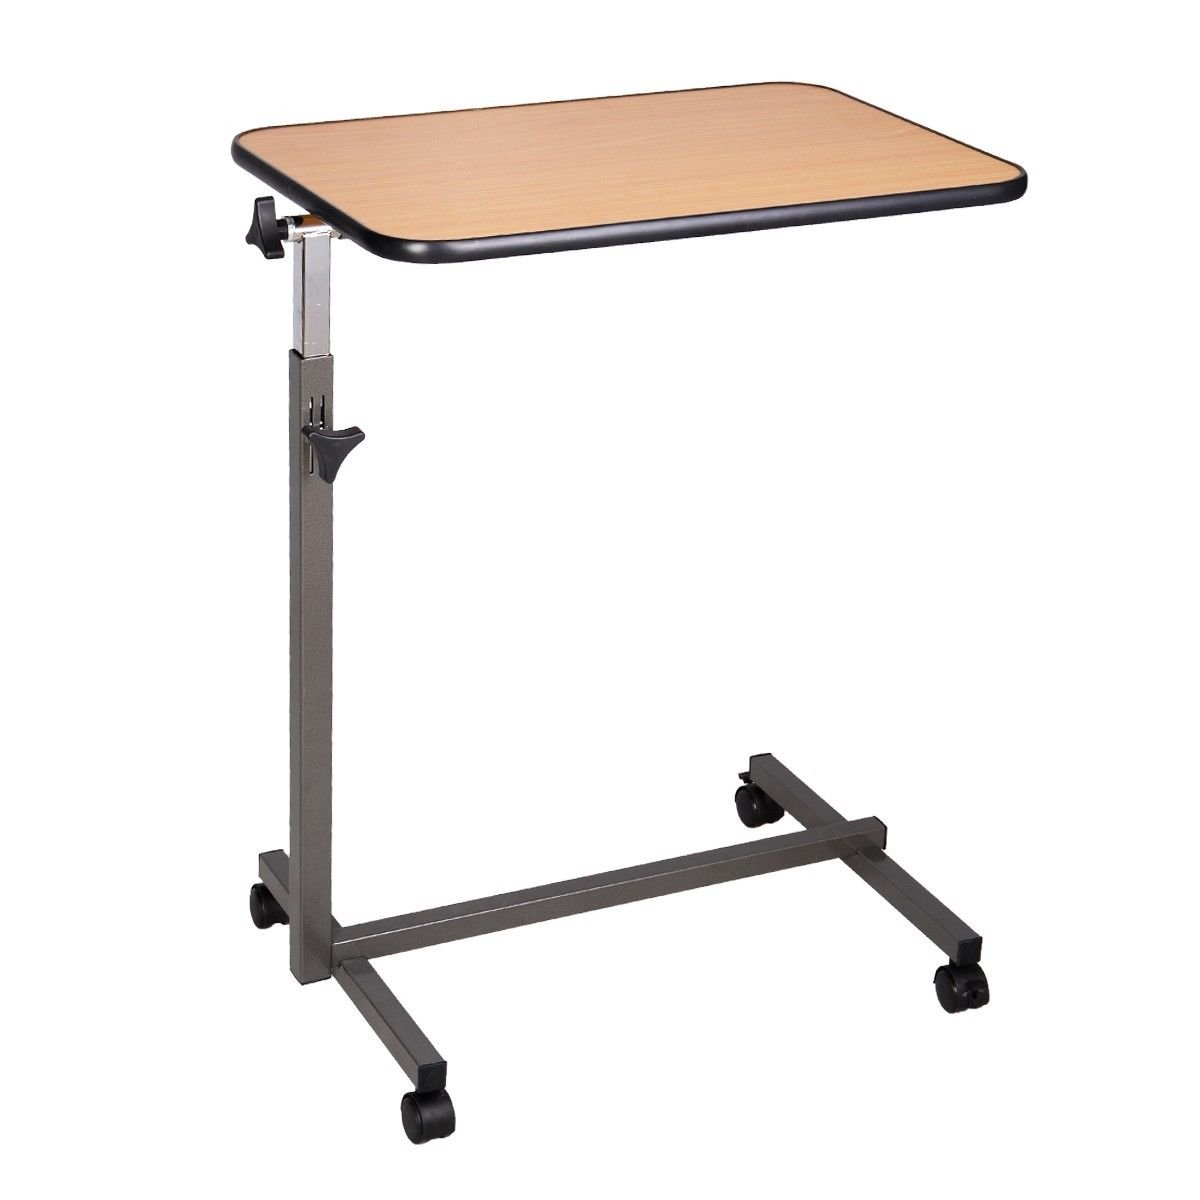 Super buy Overbed Rolling Table Over Bed Laptop Food Tray Hospital Desk With Tilting Top